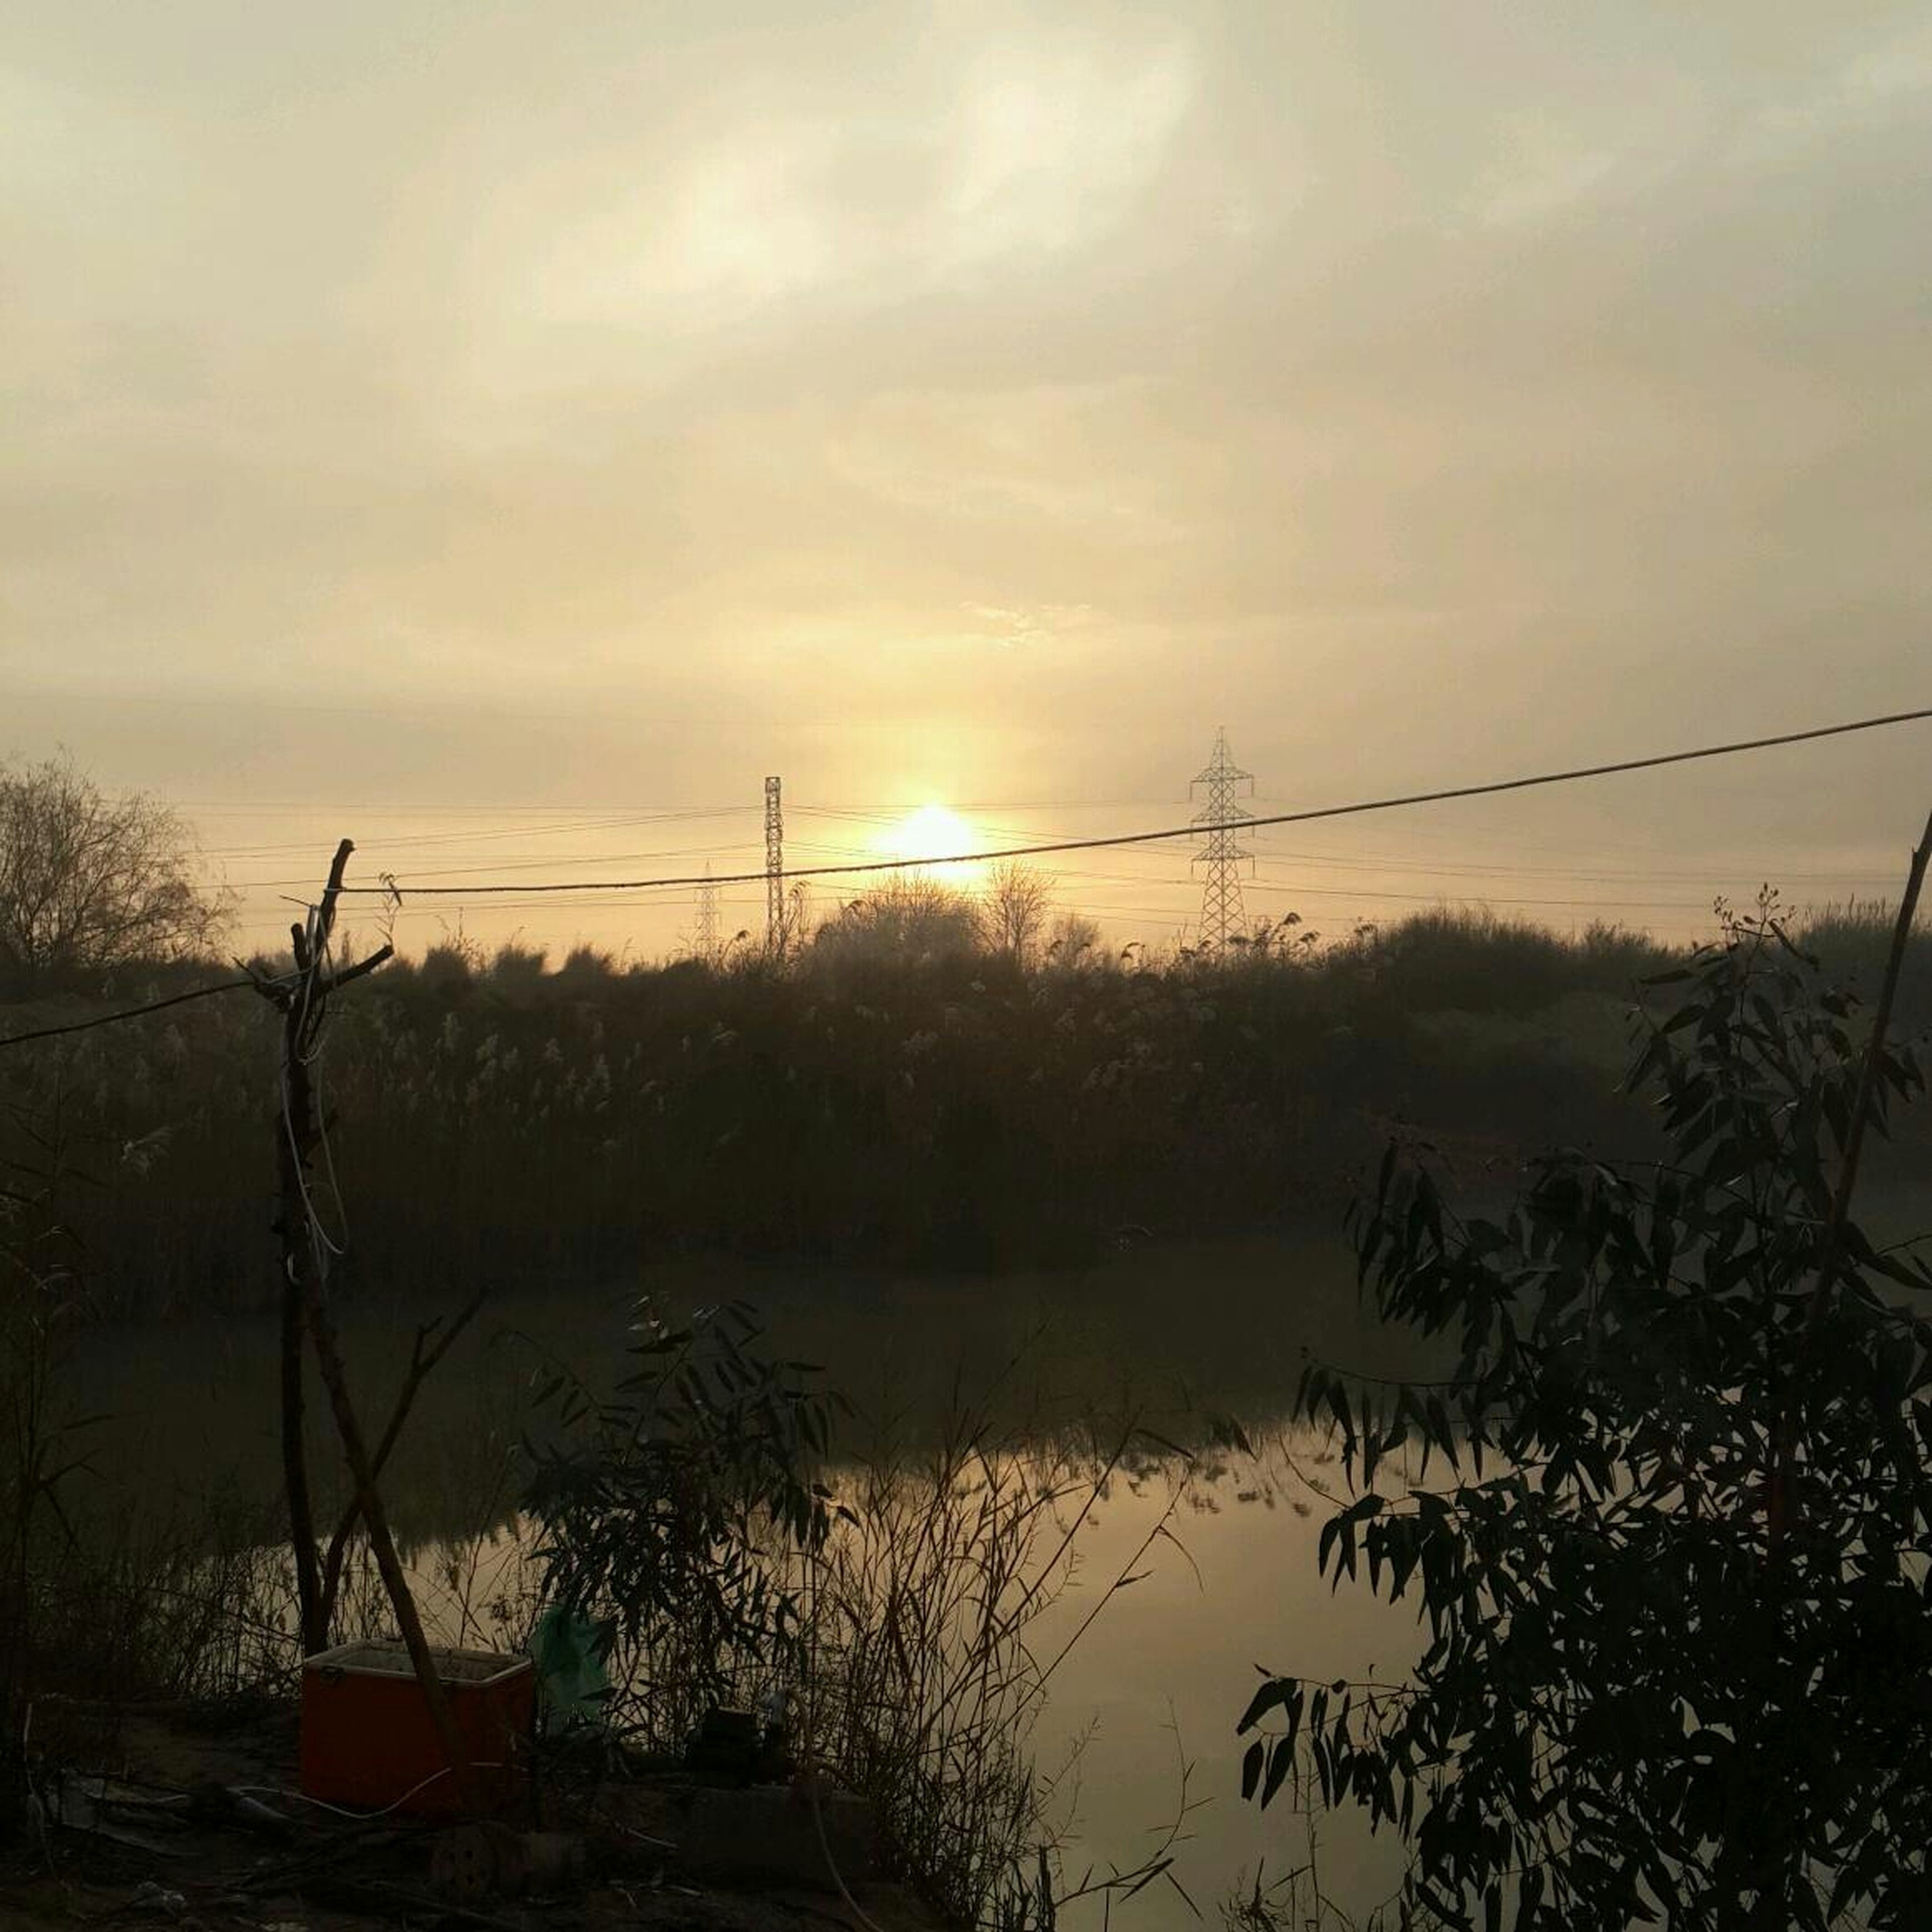 water, sunset, tranquility, sky, tranquil scene, scenics, lake, beauty in nature, reflection, tree, nature, silhouette, cloud - sky, idyllic, river, plant, orange color, cloud, sun, electricity pylon